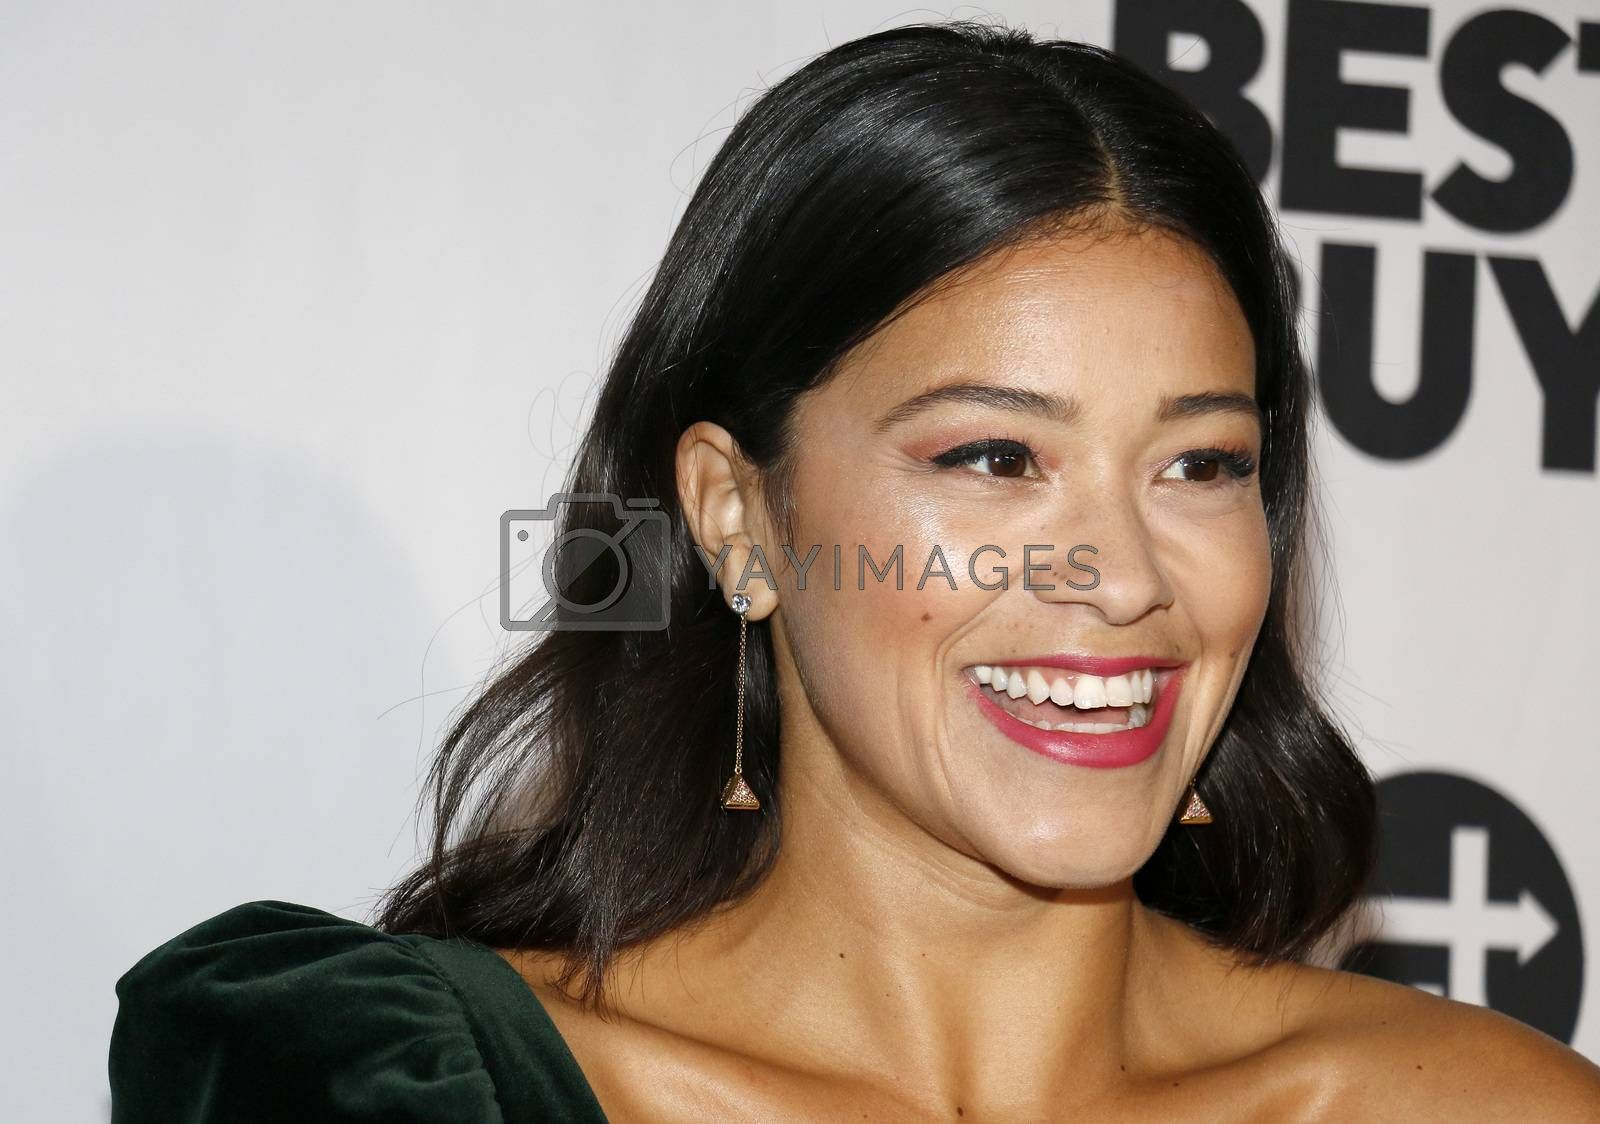 Gina Rodriguez at the Eva Longoria Foundation Dinner Gala held at the Four Seasons Hotel in Beverly Hills, USA on November 8, 2018.